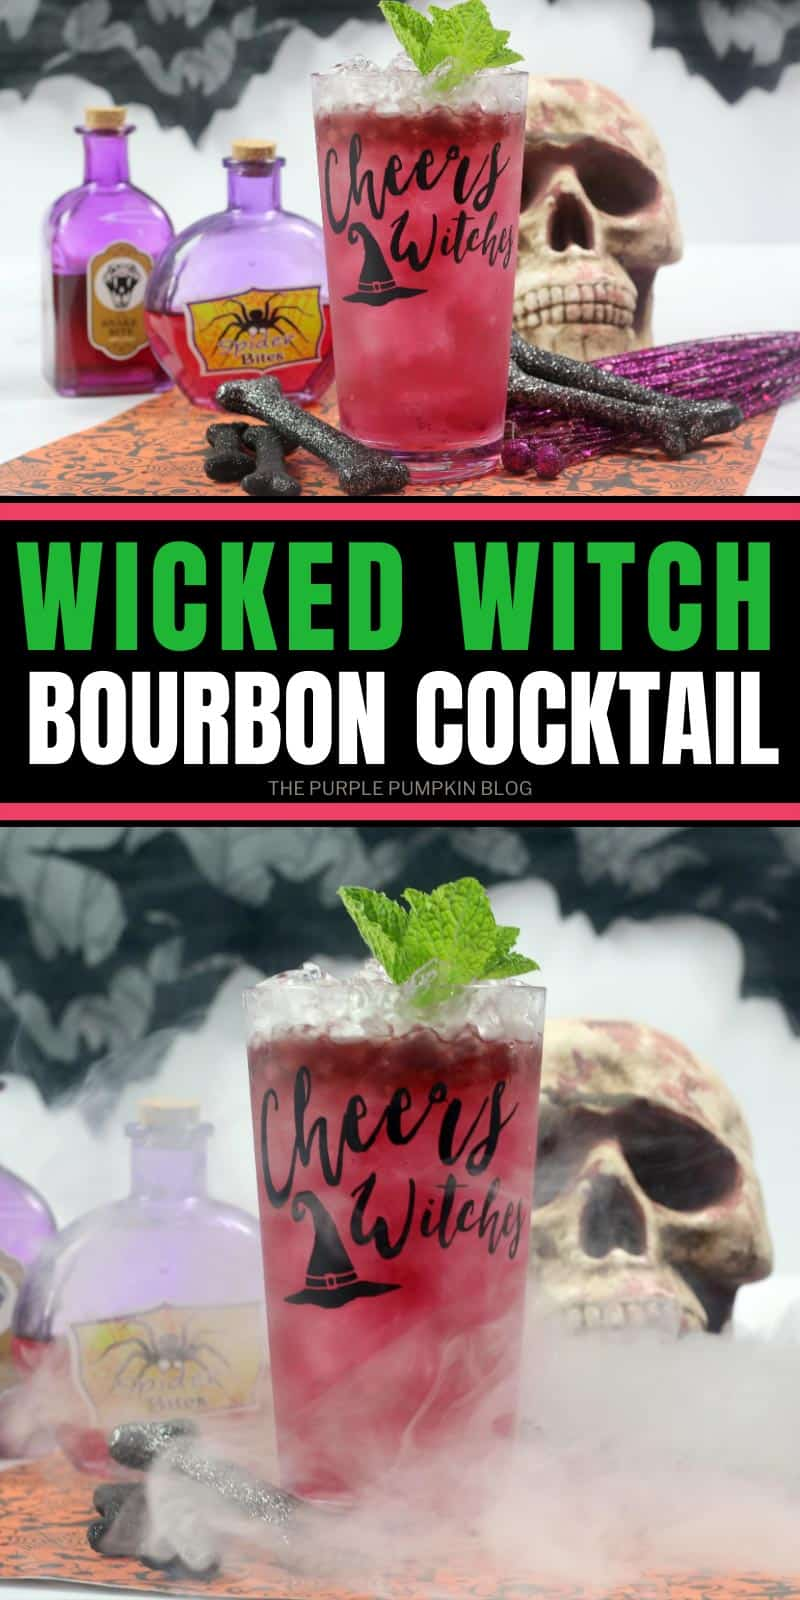 2 images of Wicked Witch cocktail one with bones and potions in the background, and the other with smoke surrounding the glass.